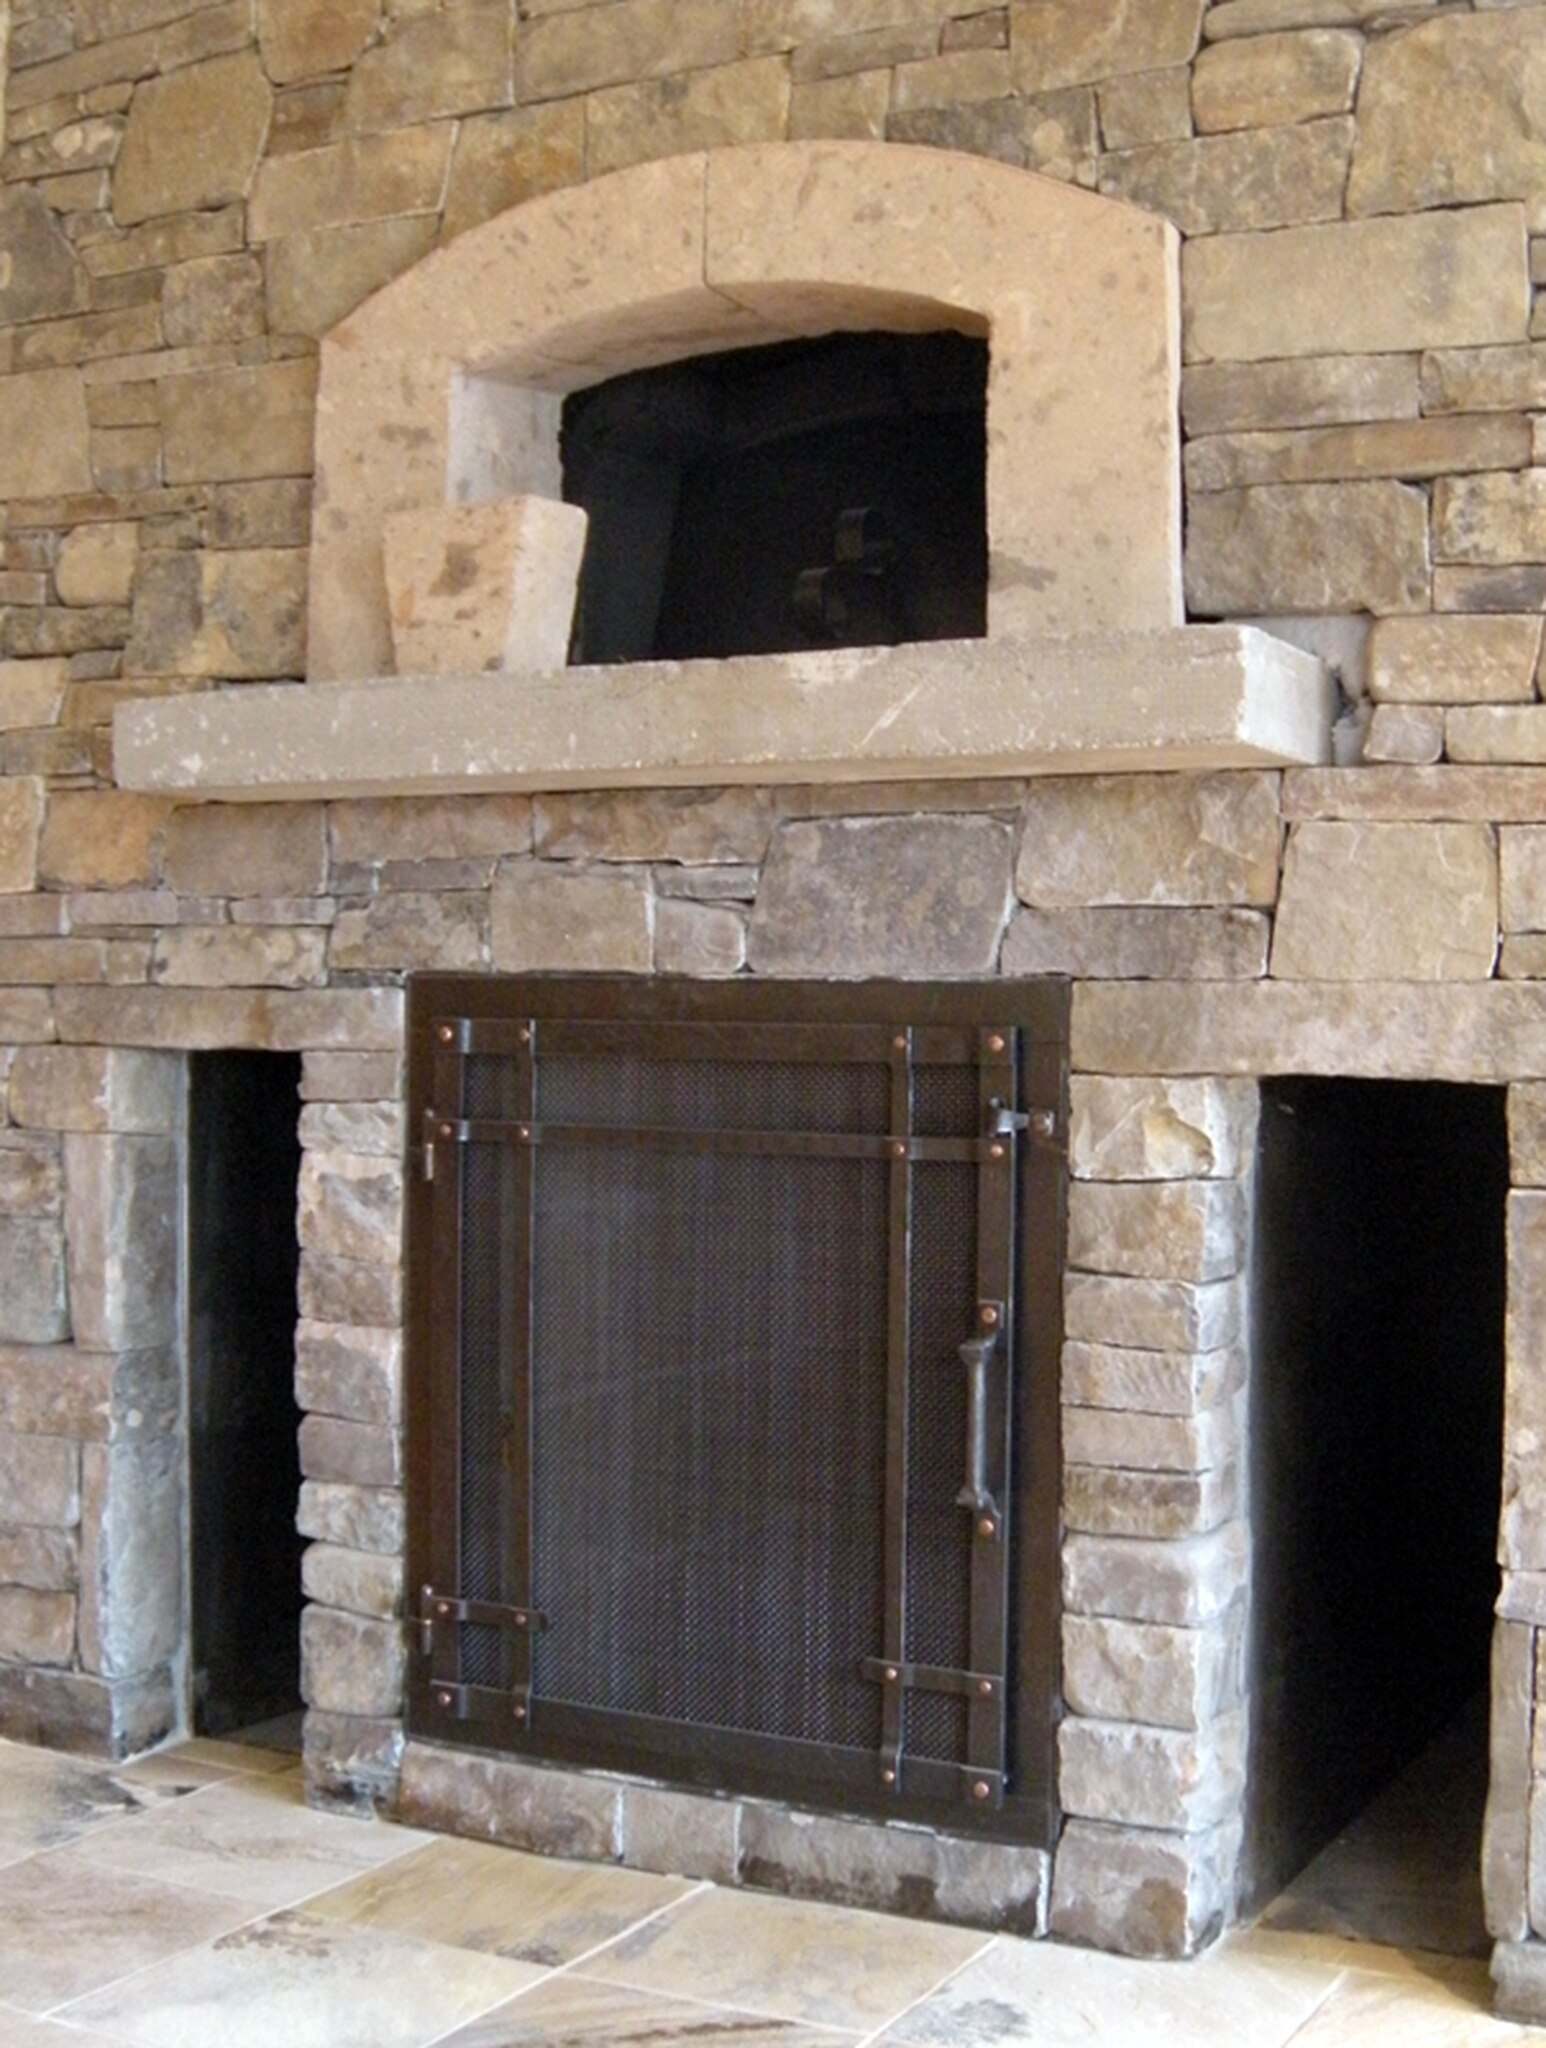 6fireplace doors with oven